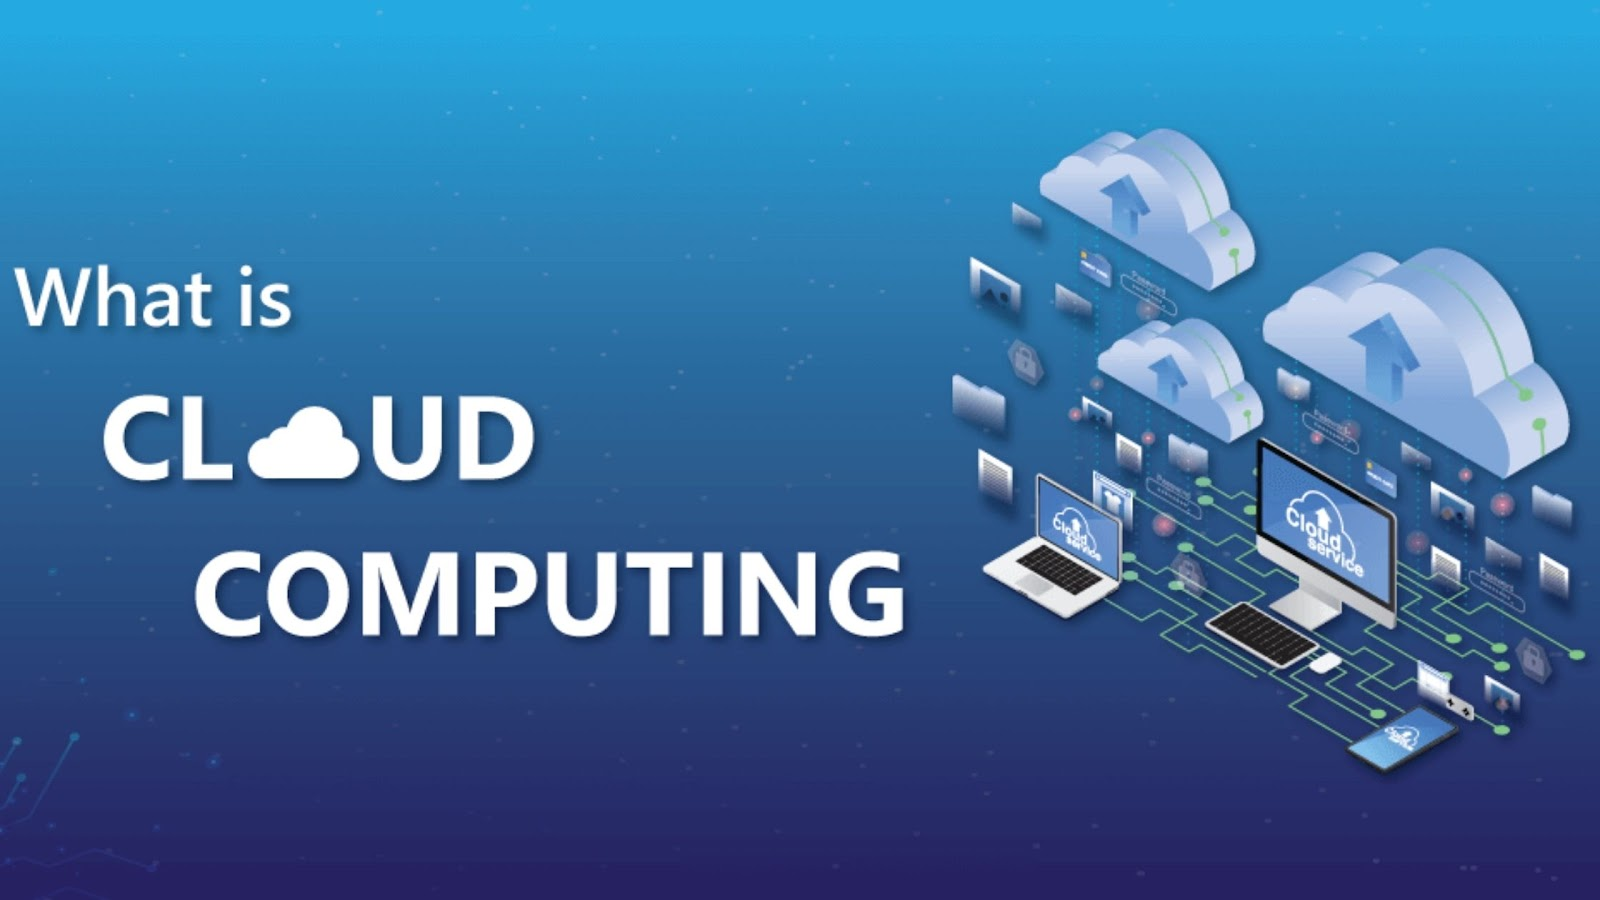 What's cloud computing, even in simple terms?